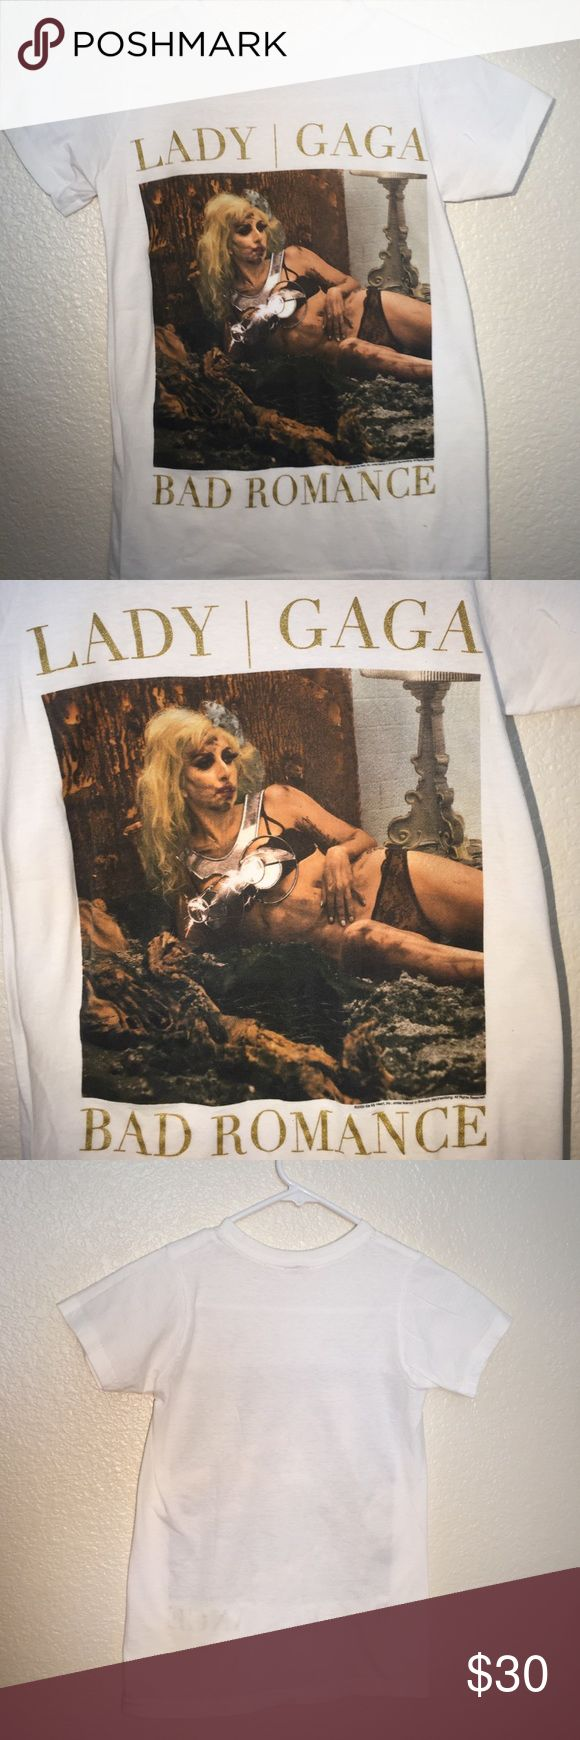 "BNWOT limited edition Lady Gaga ""Bad Romance"" Brand new without tags limited edition Lady Gaga ""Bad Romance"" t-shirt. Absolutely love this but have Had it for years and have never worn it. Shirt features my favorite scene from the bad romance video. This shirt needs needs to go home to a little monster that will love it way I should have. 💕💕💕 Lady Gaga Tops Tees - Short Sleeve"